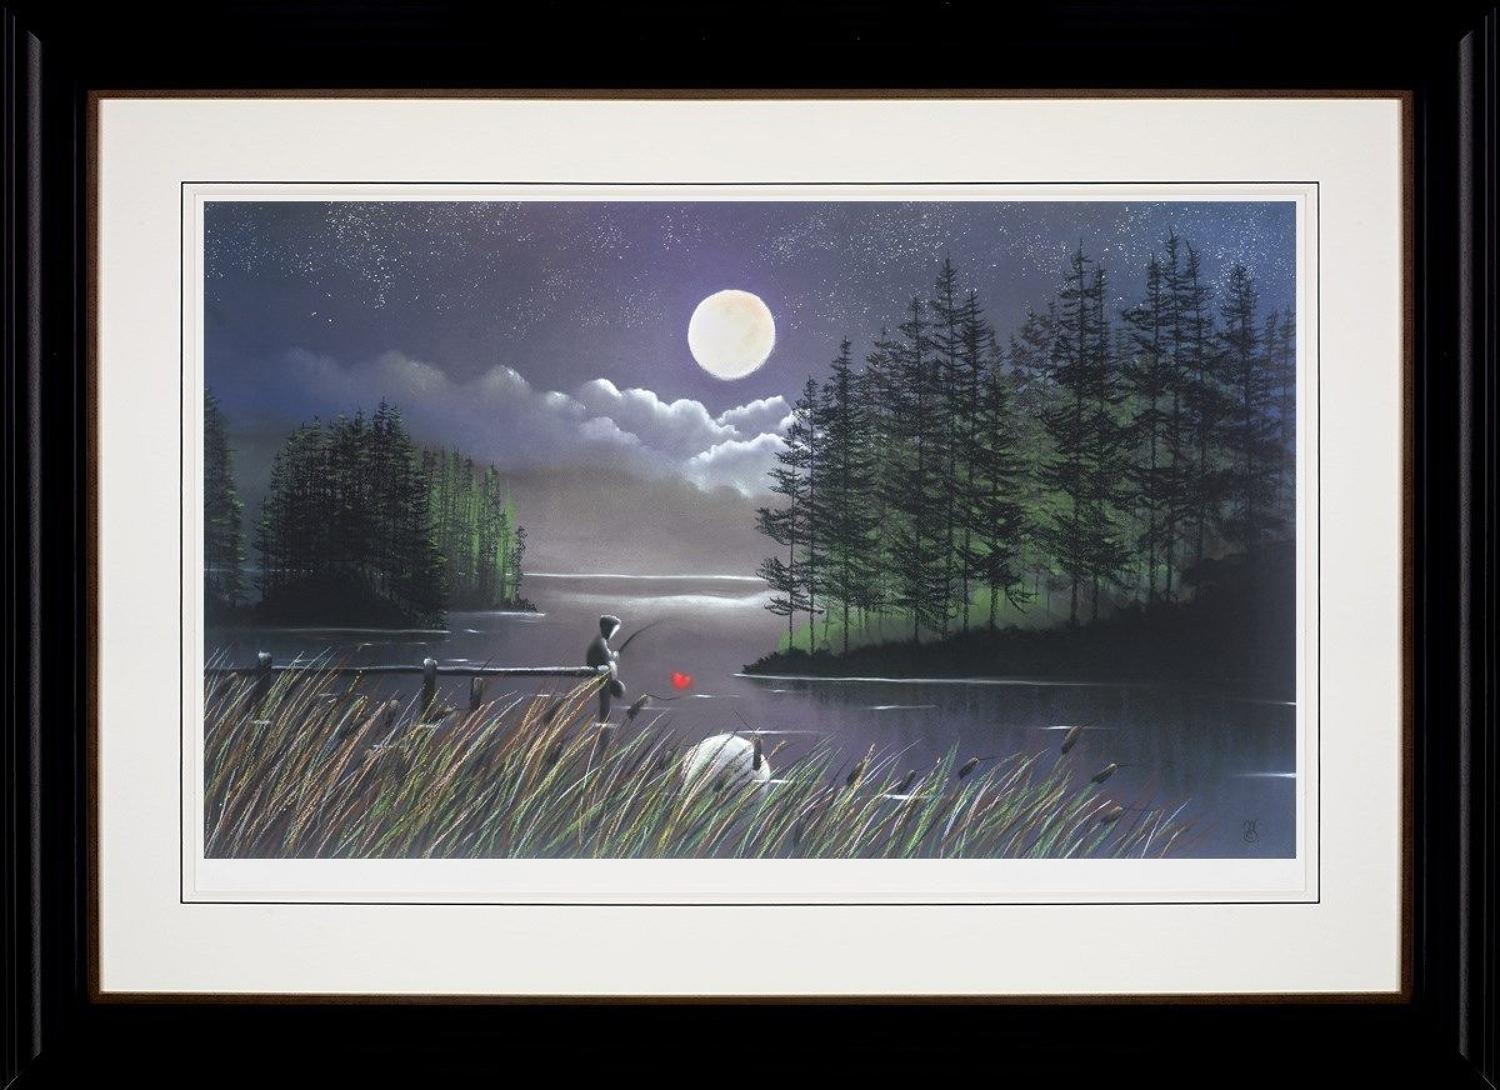 I'll Catch You the Moon by Mackenzie Thorpe Framed Art Print.